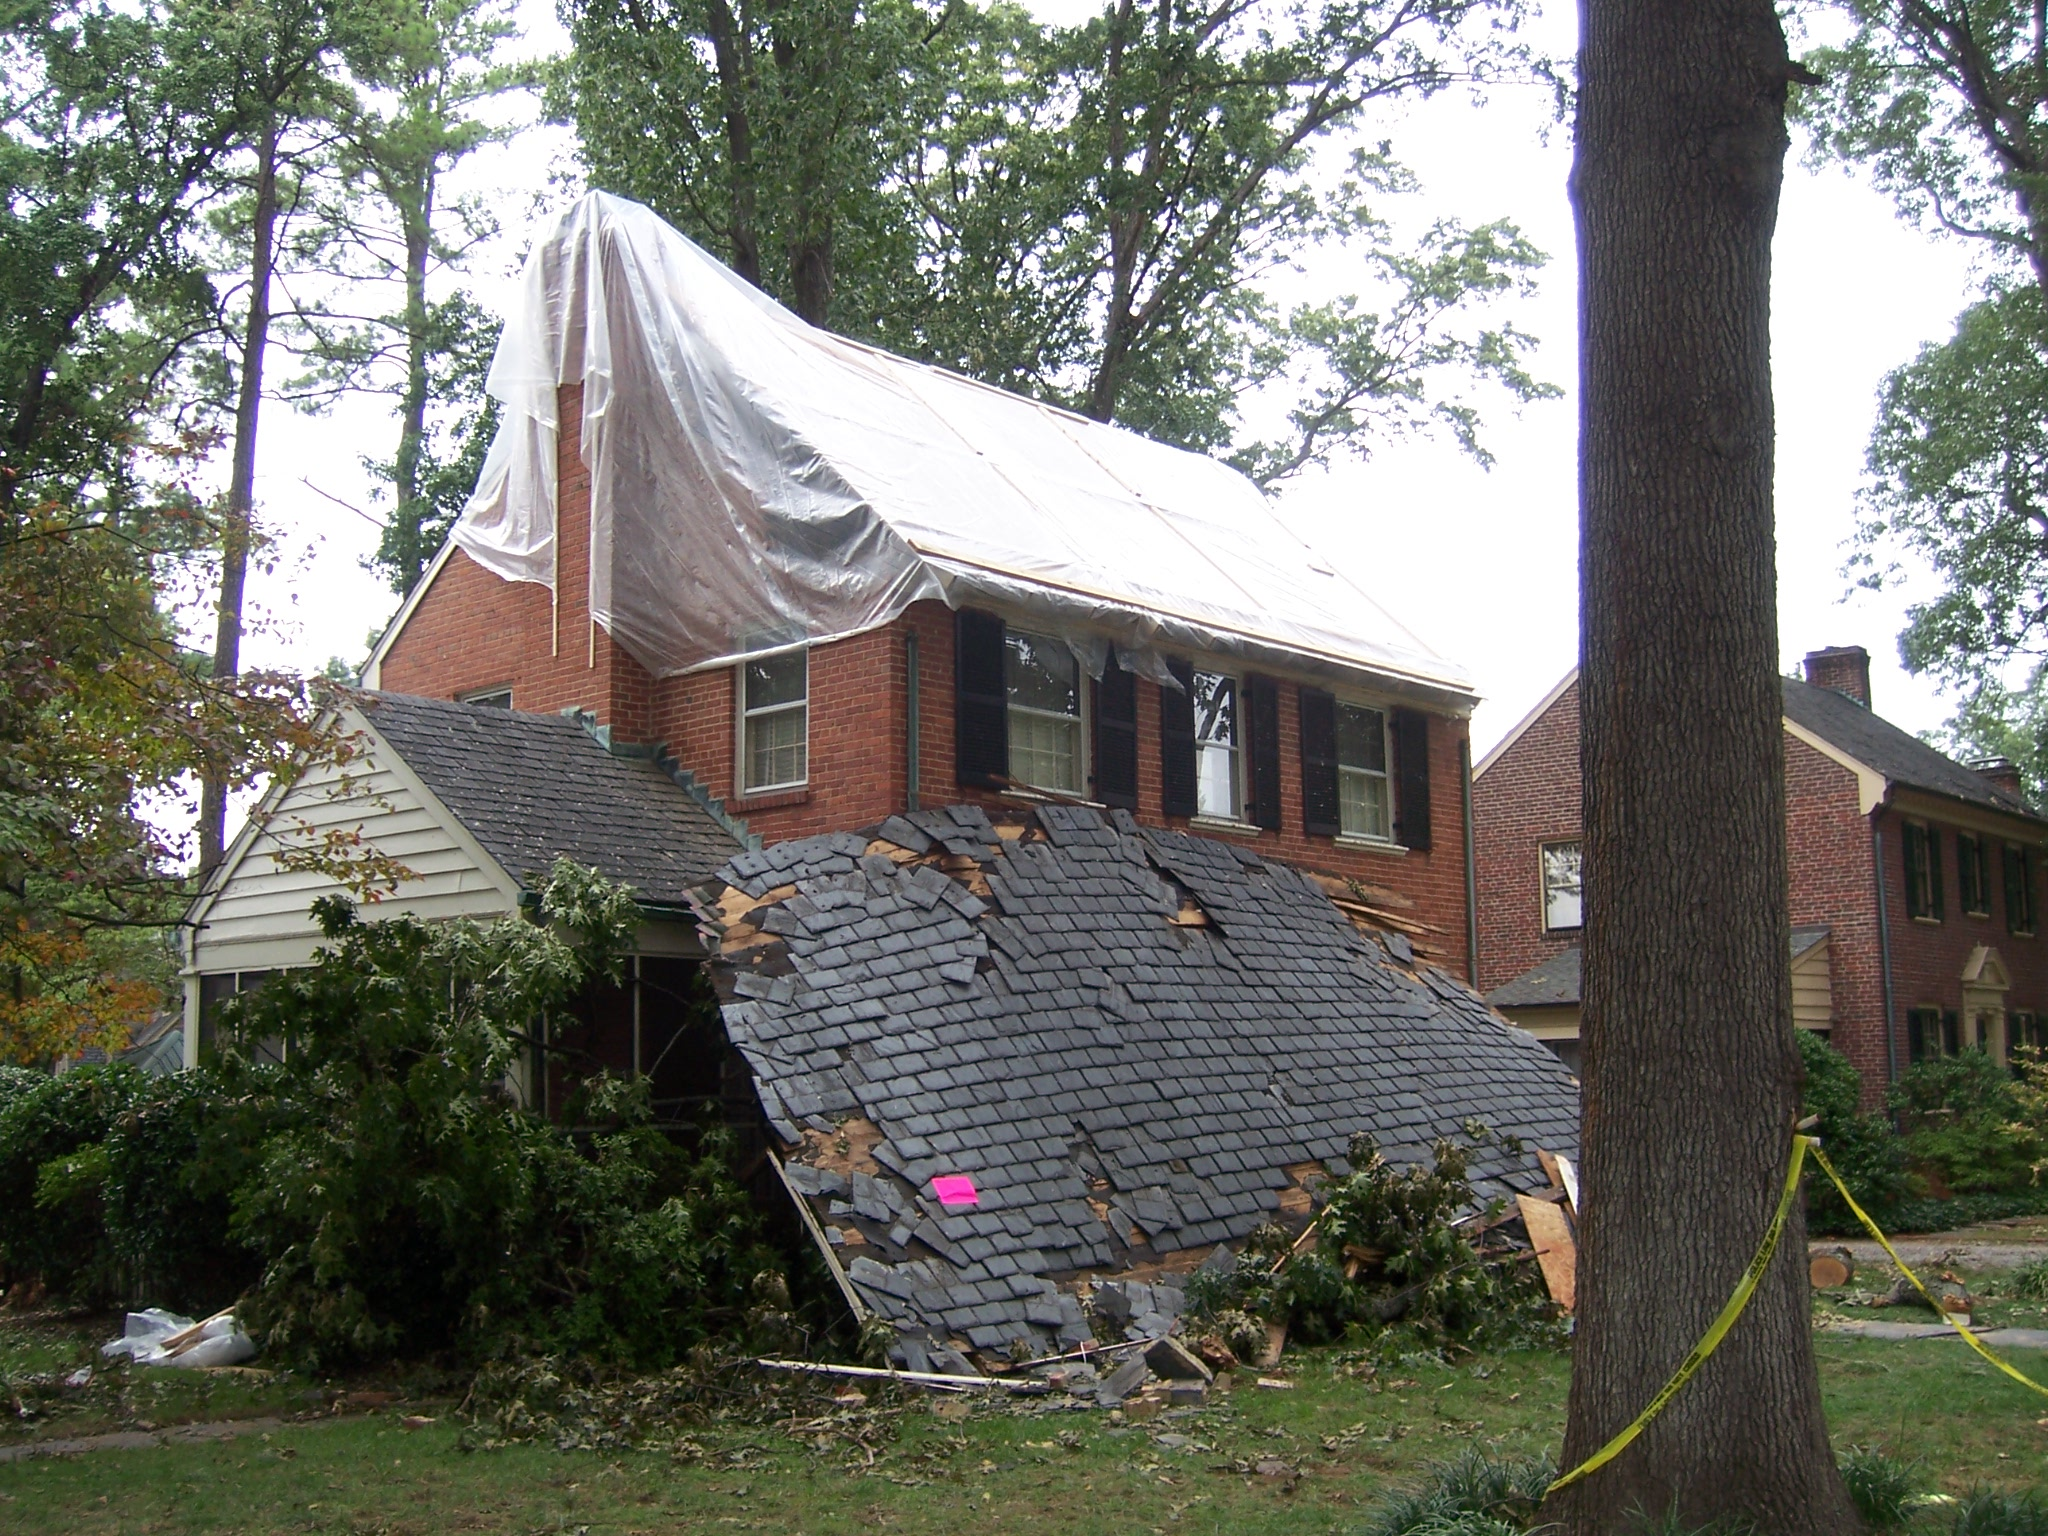 How to Reduce Wind Damage to Your Home